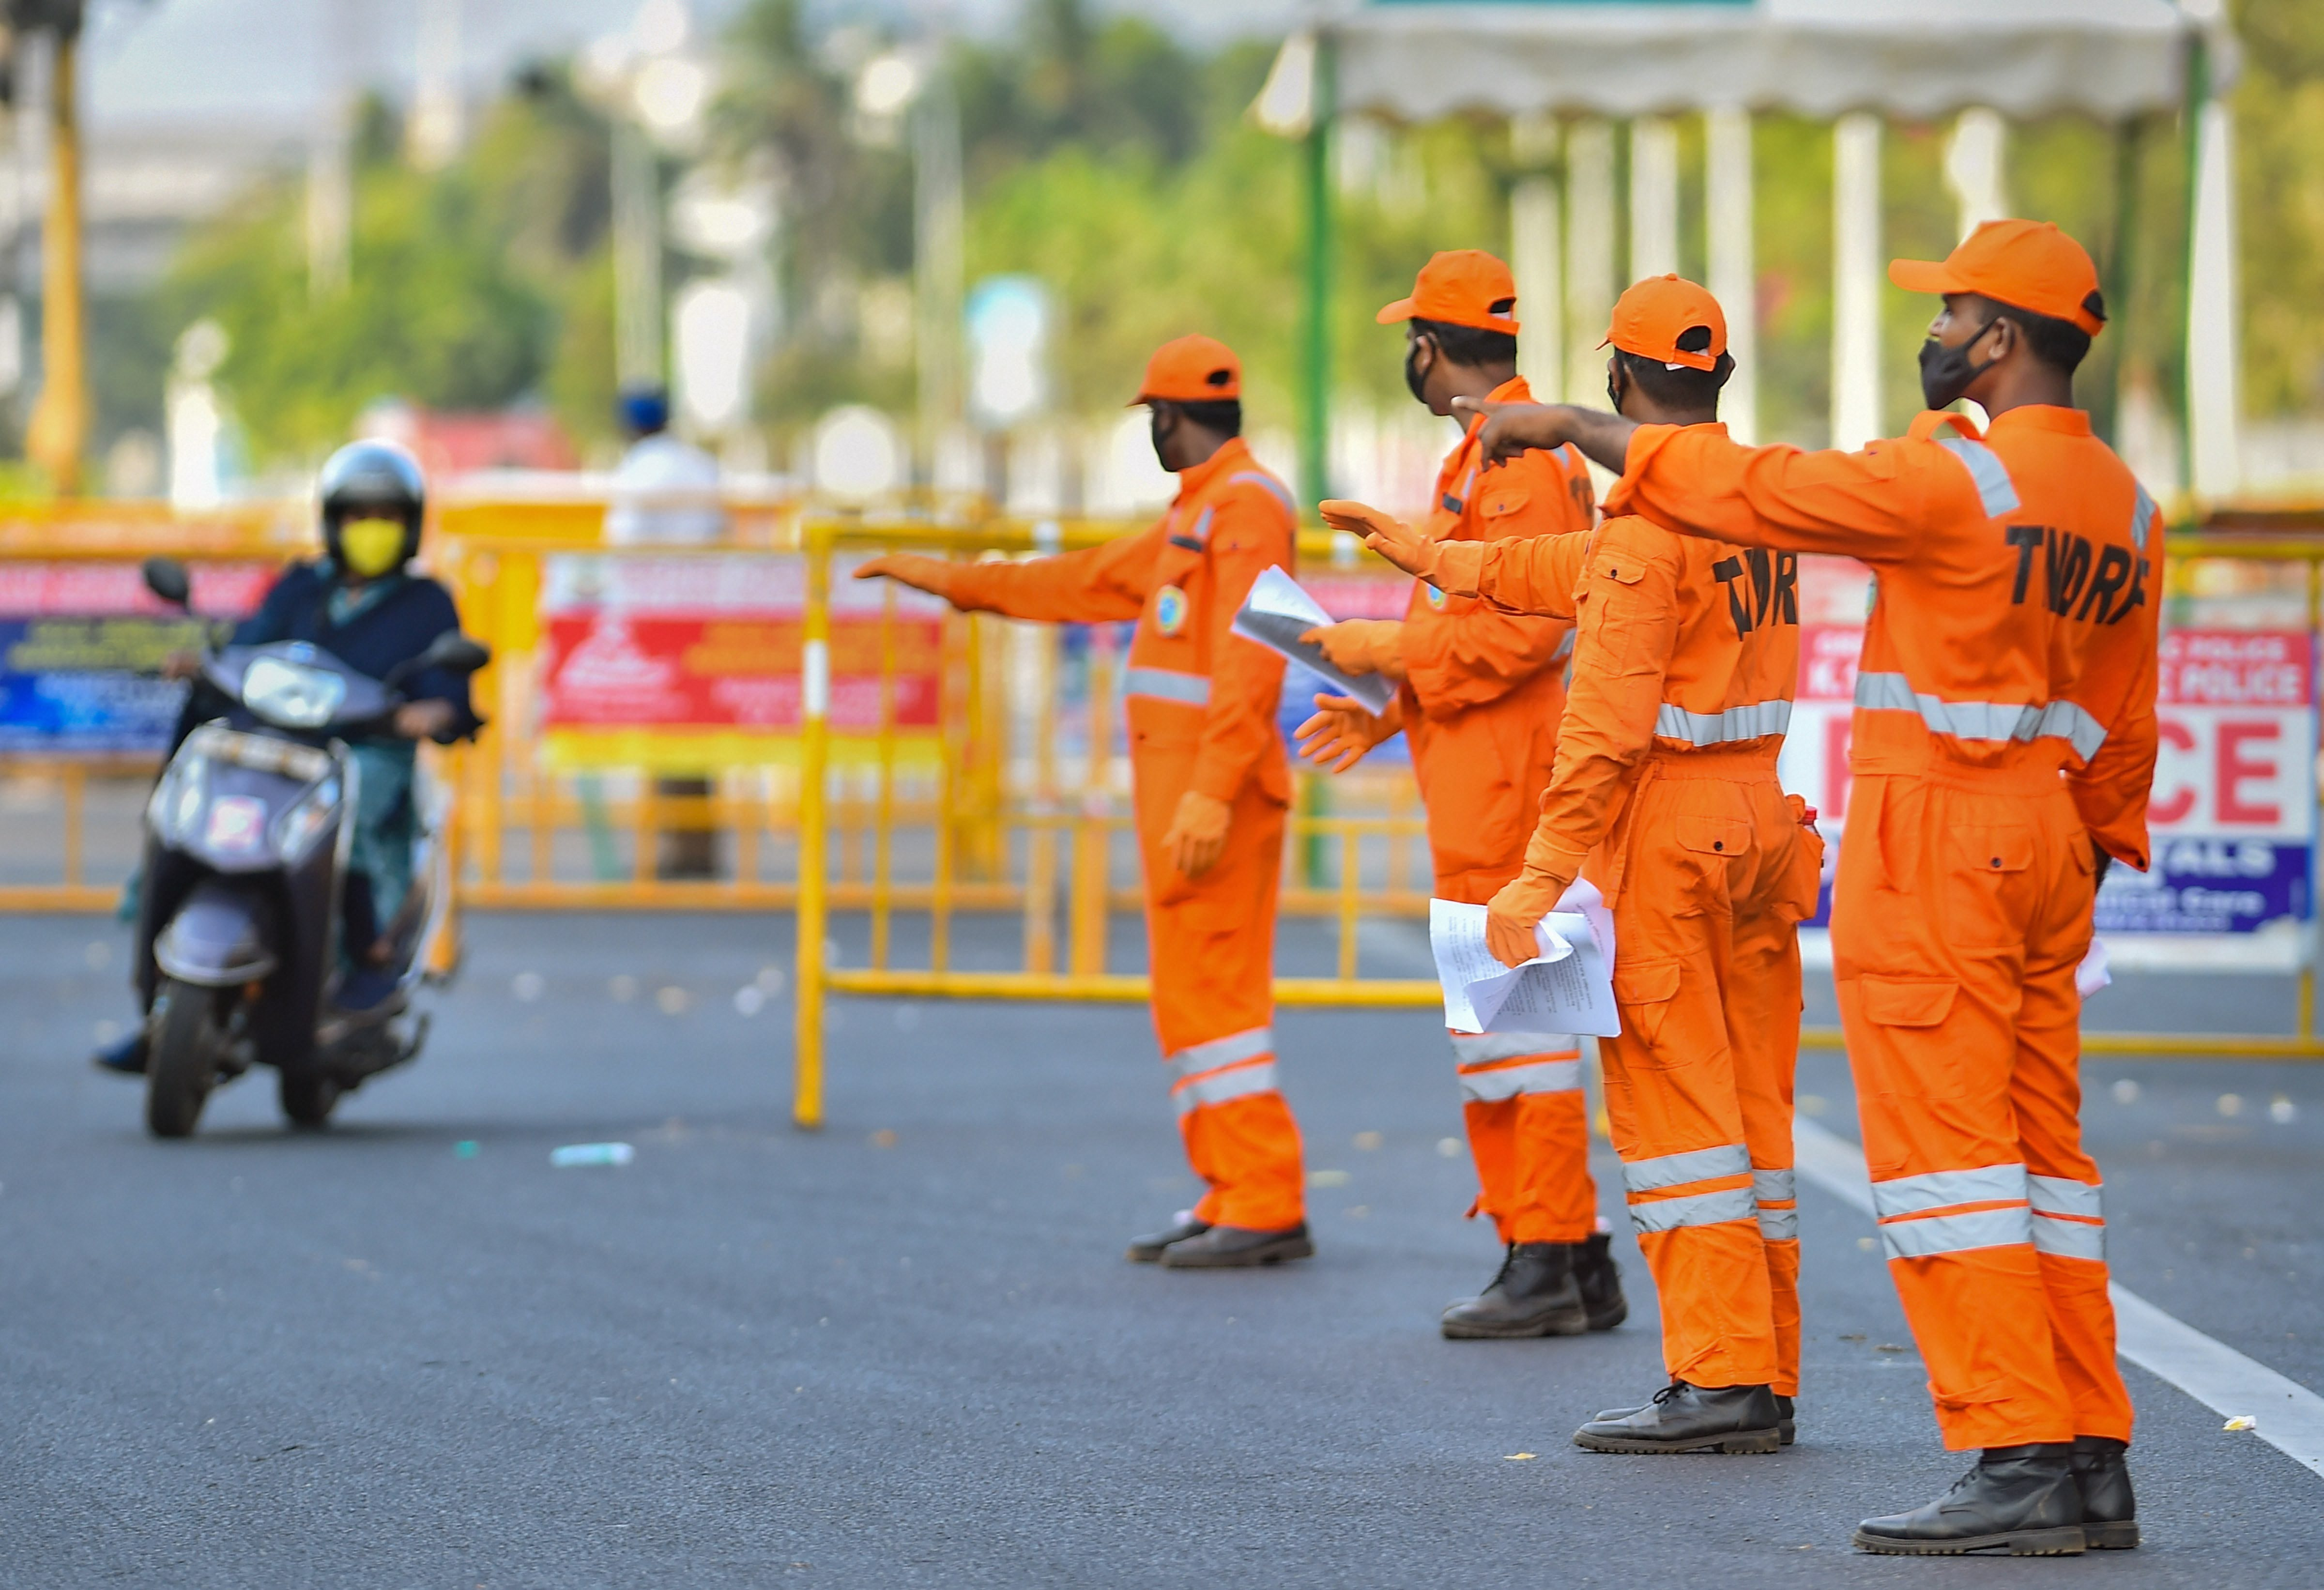 Tamil Nadu Disaster Response Force (TNDRF) personnel stop a bike rider to spread awareness on the importance of staying home in wake of the coronavirus pandemic, during the nationwide lockdown, in Chennai, Wednesday, April 8, 2020